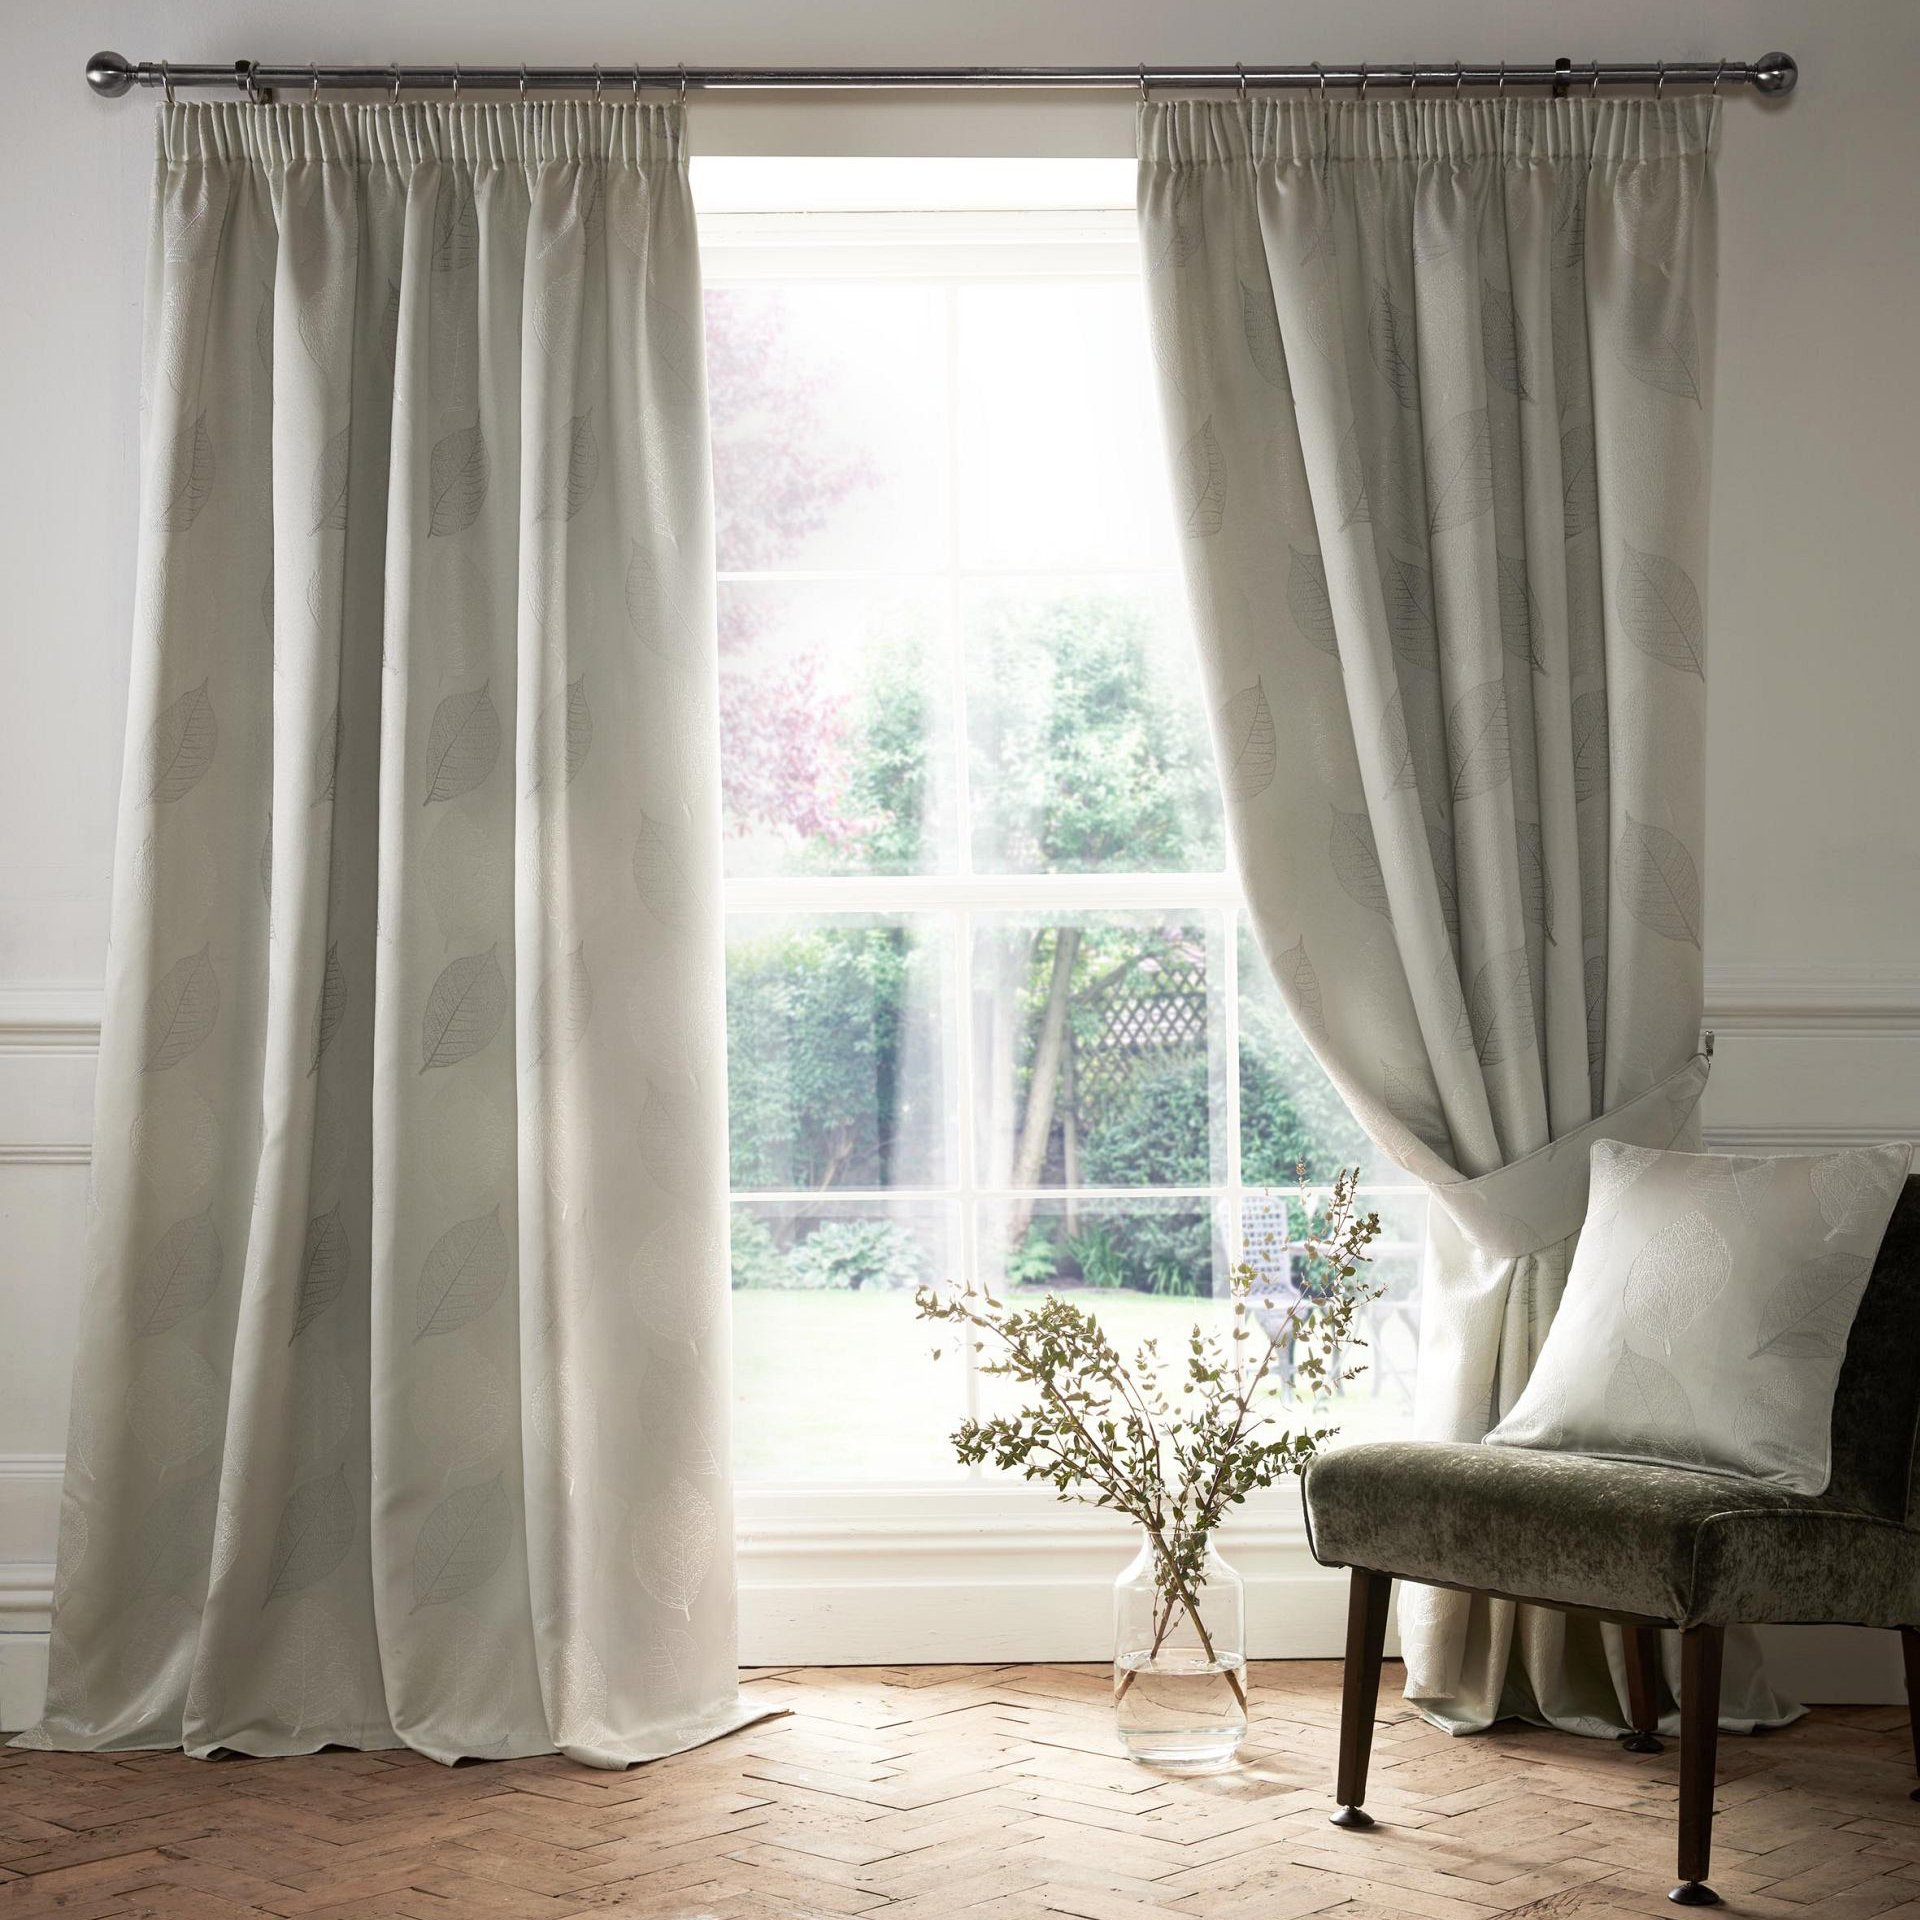 Village-fabrics-Curtains-Ashwell-Silver